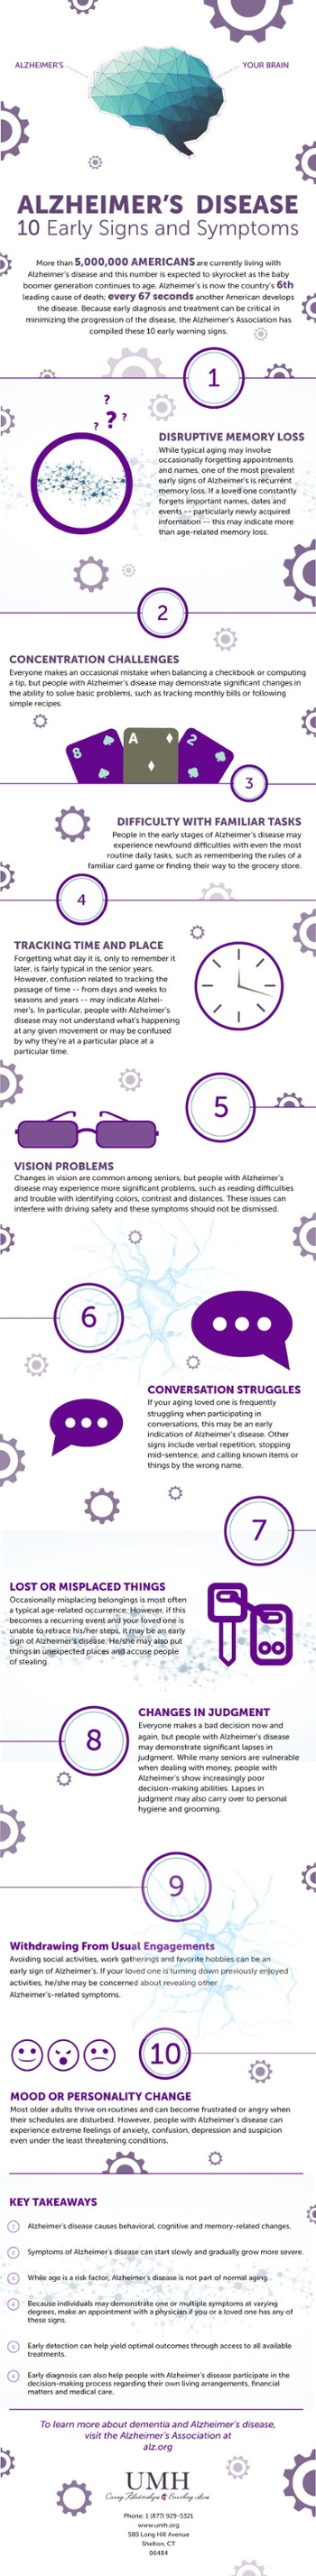 Alzheimer_s-Disease--10-Early-Signs-and-Symptoms-v2_2